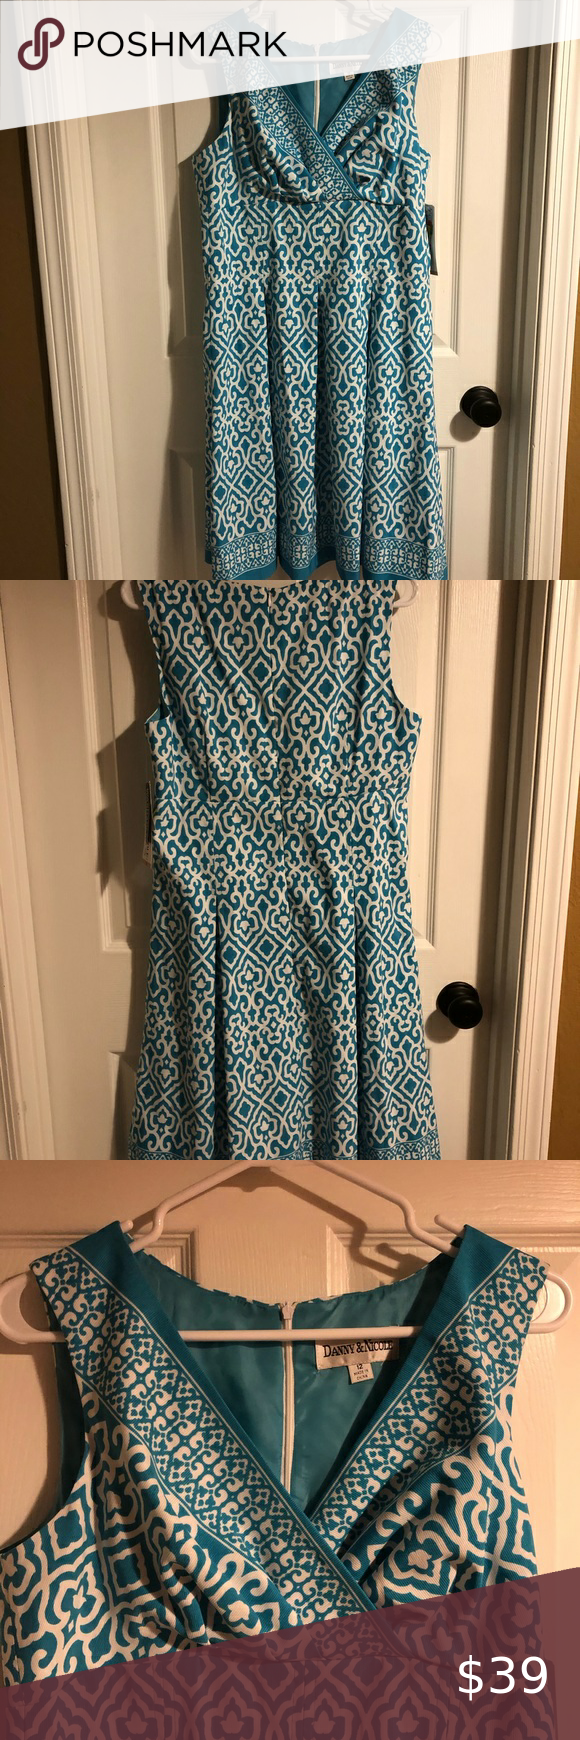 Danny And Nicole Size 12 Summer Dress Summer Dresses Clothes Design Size 12 [ 1740 x 580 Pixel ]